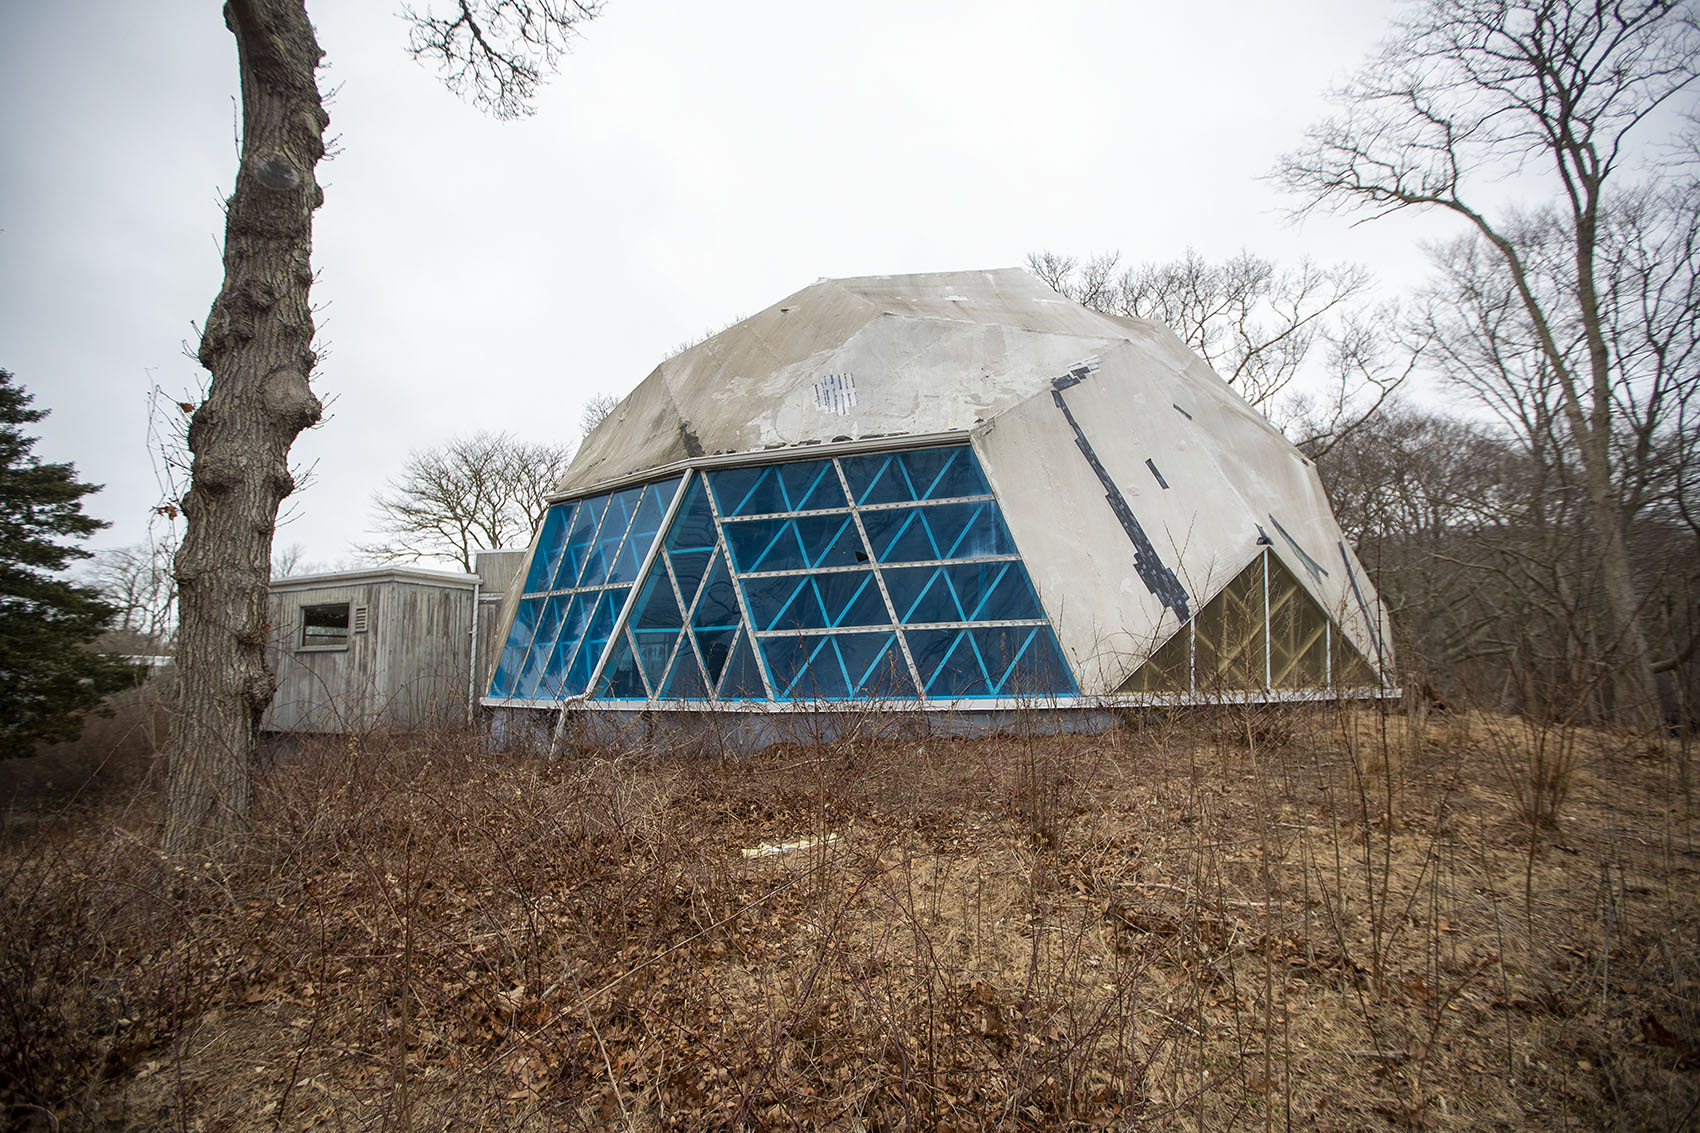 The Dome in Woods Hole, the oldest surviving geodesic dome in the world built by Buckminster Fuller, is in a state of total disrepair. (Jesse Costa/WBUR)